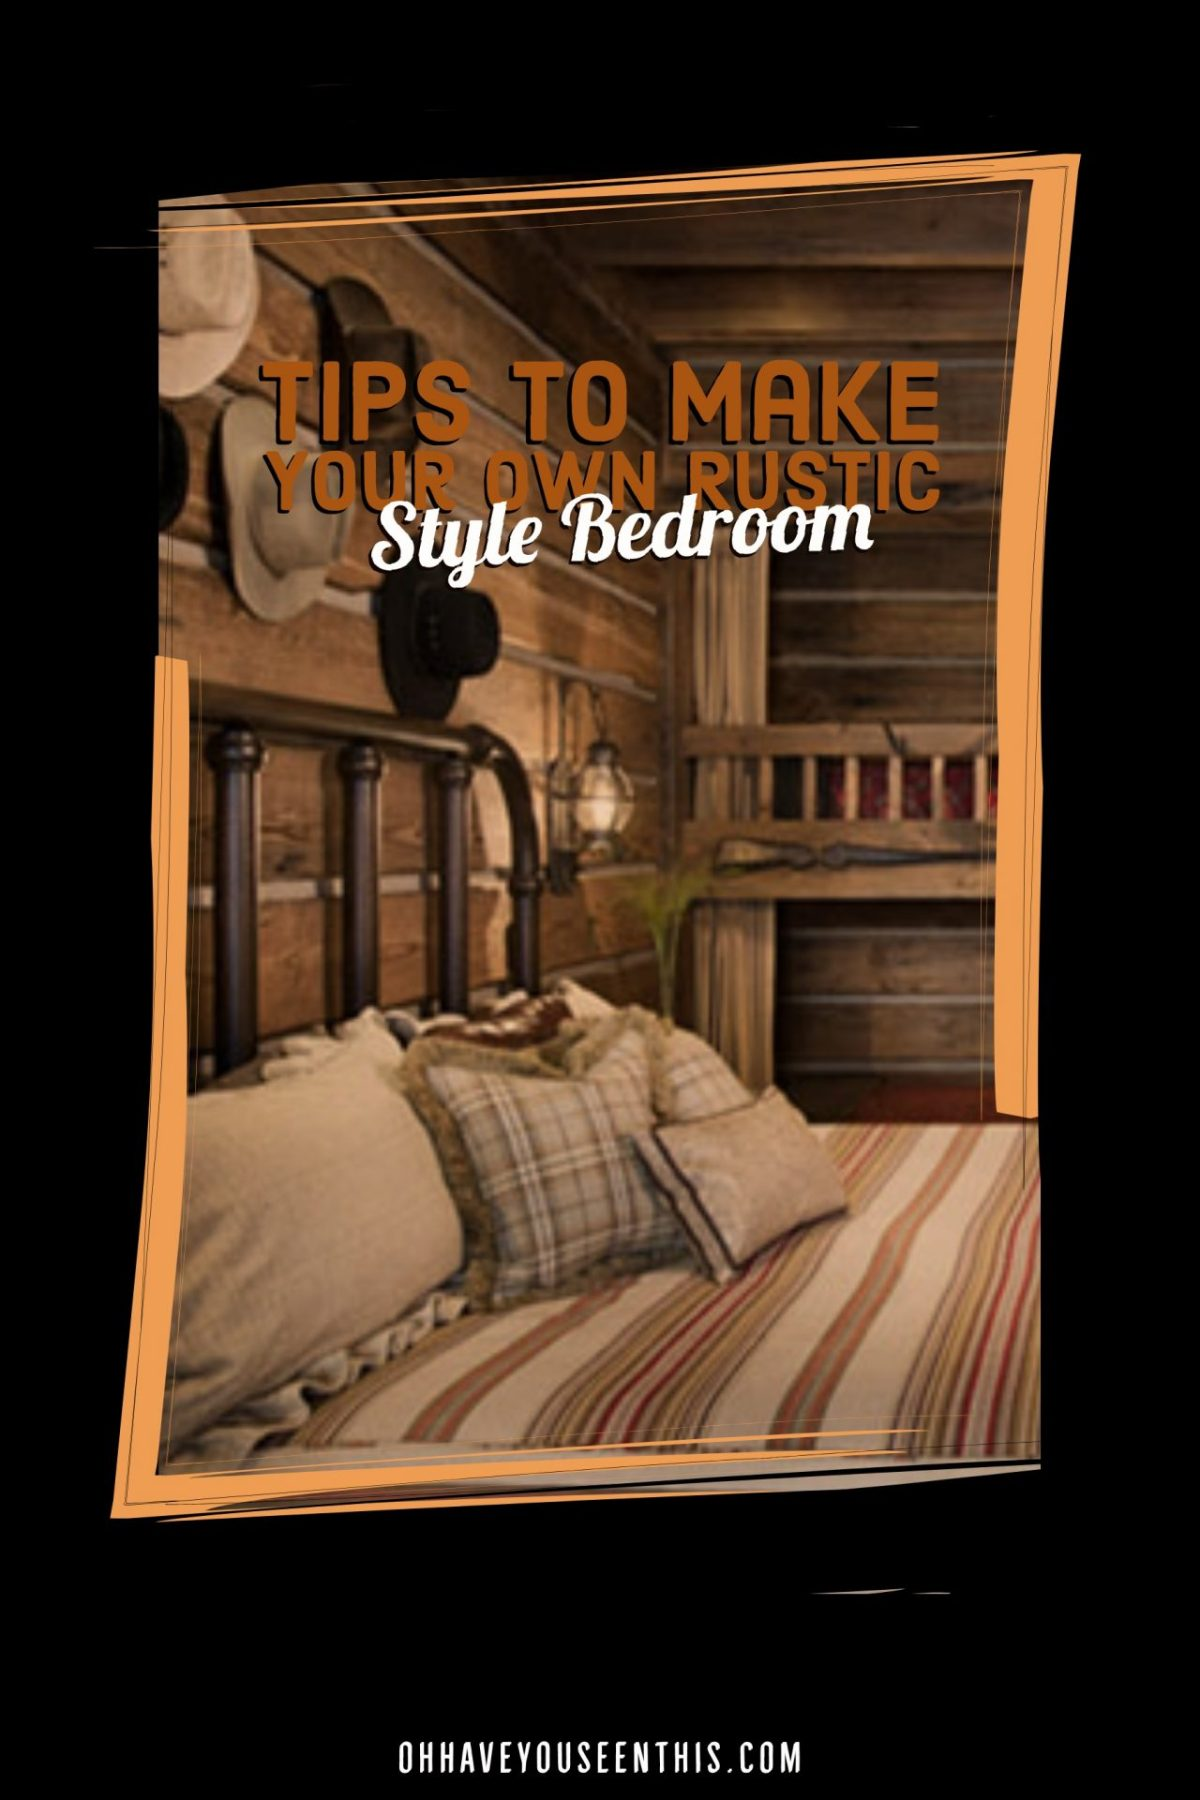 Tips to make your own rustic style bedroom